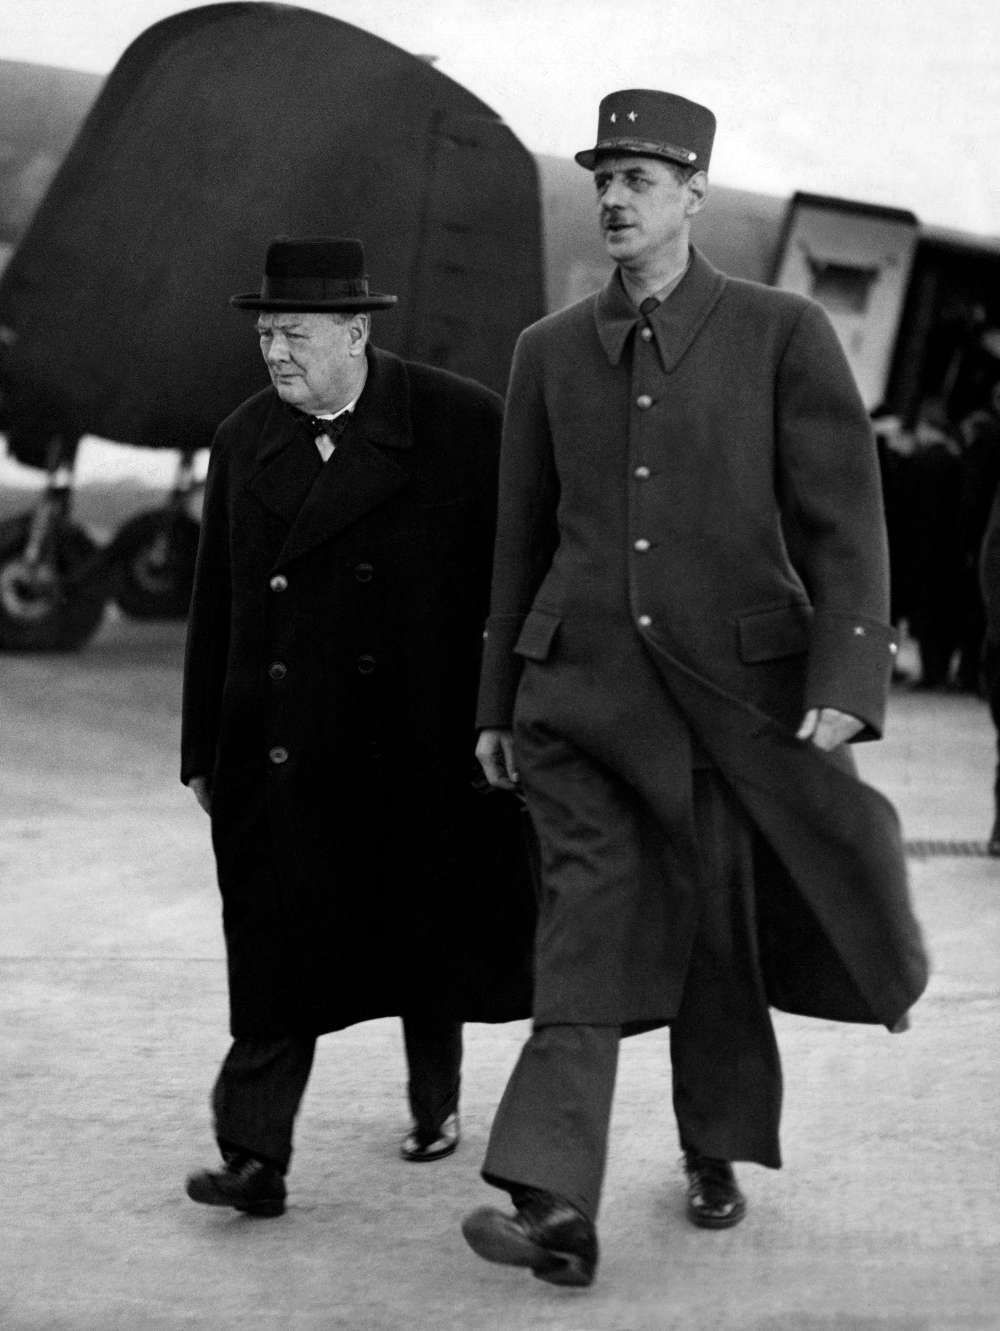 Winston Churchill et Charles de Gaulle, le 10 novembre 1944, à Paris.  Crédit photo : AFP